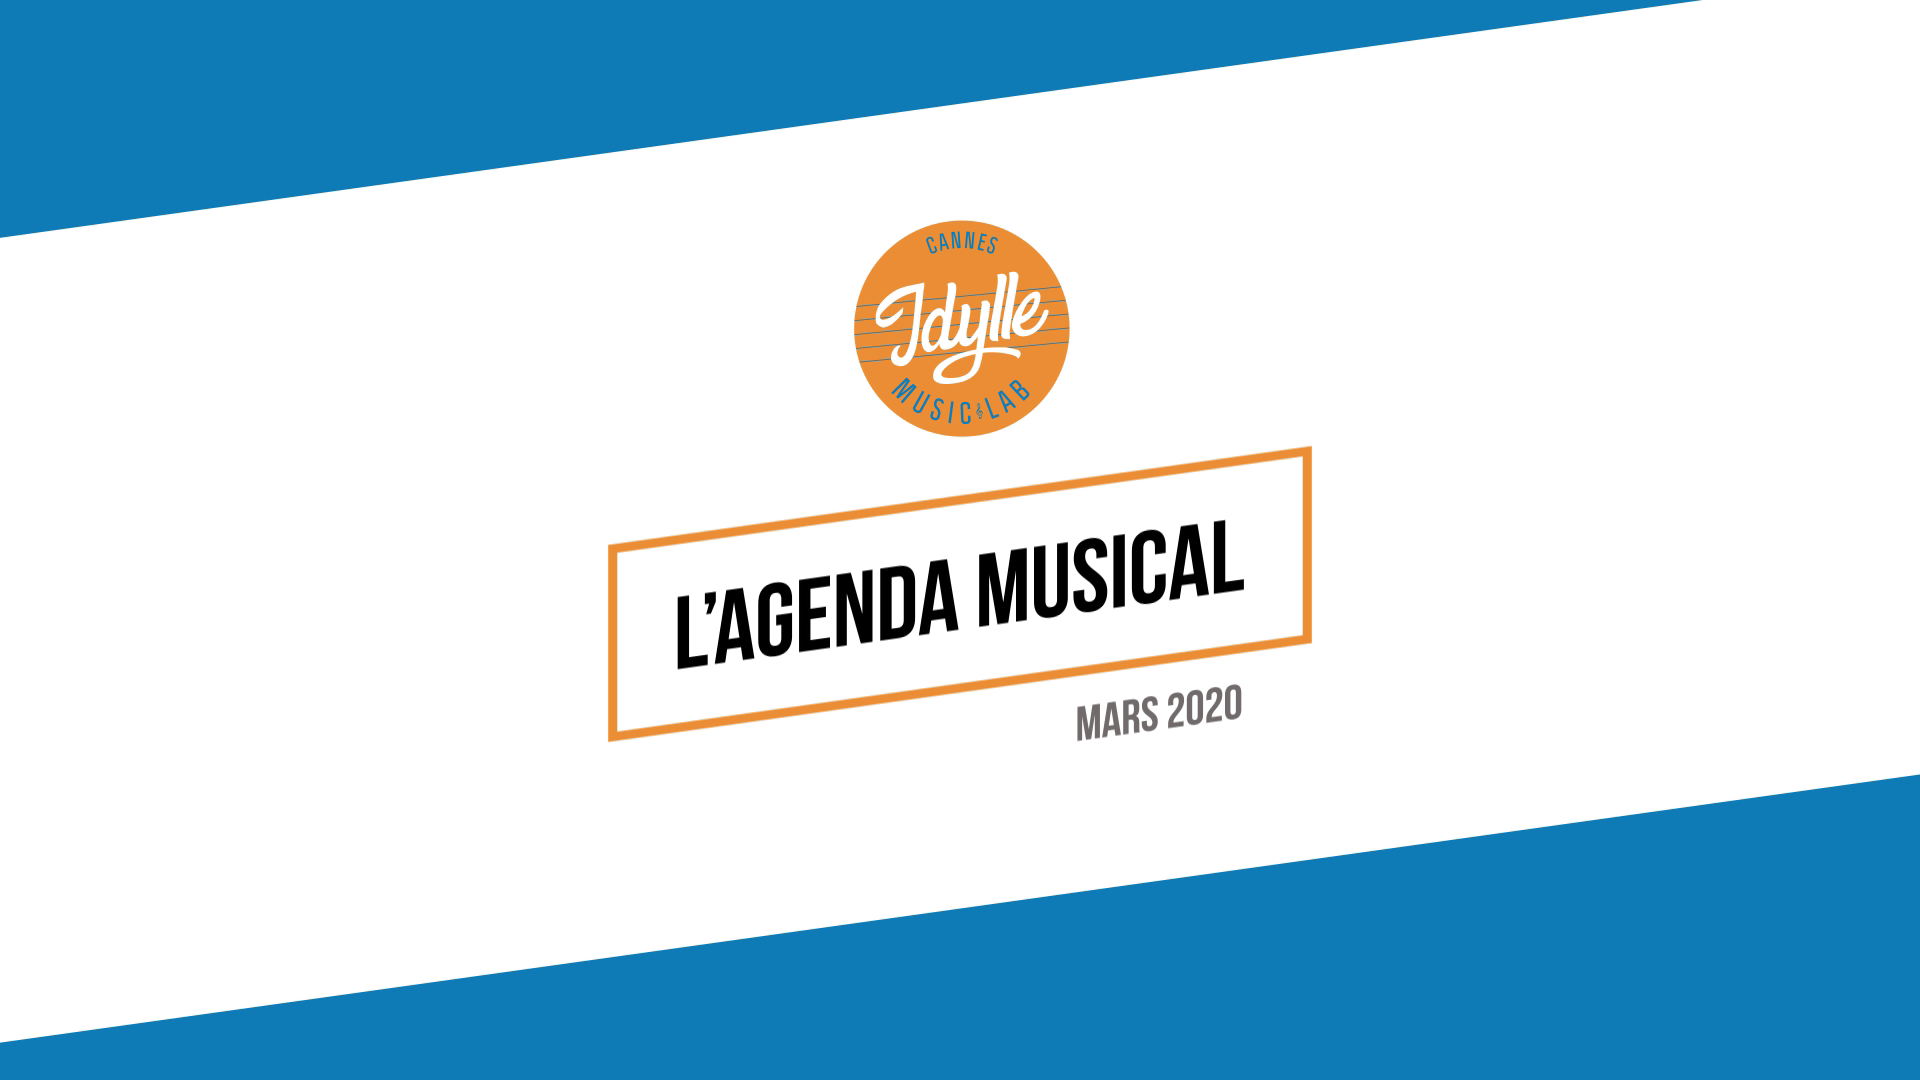 L'agenda musical Idylle Music Lab™ – Mars 2020